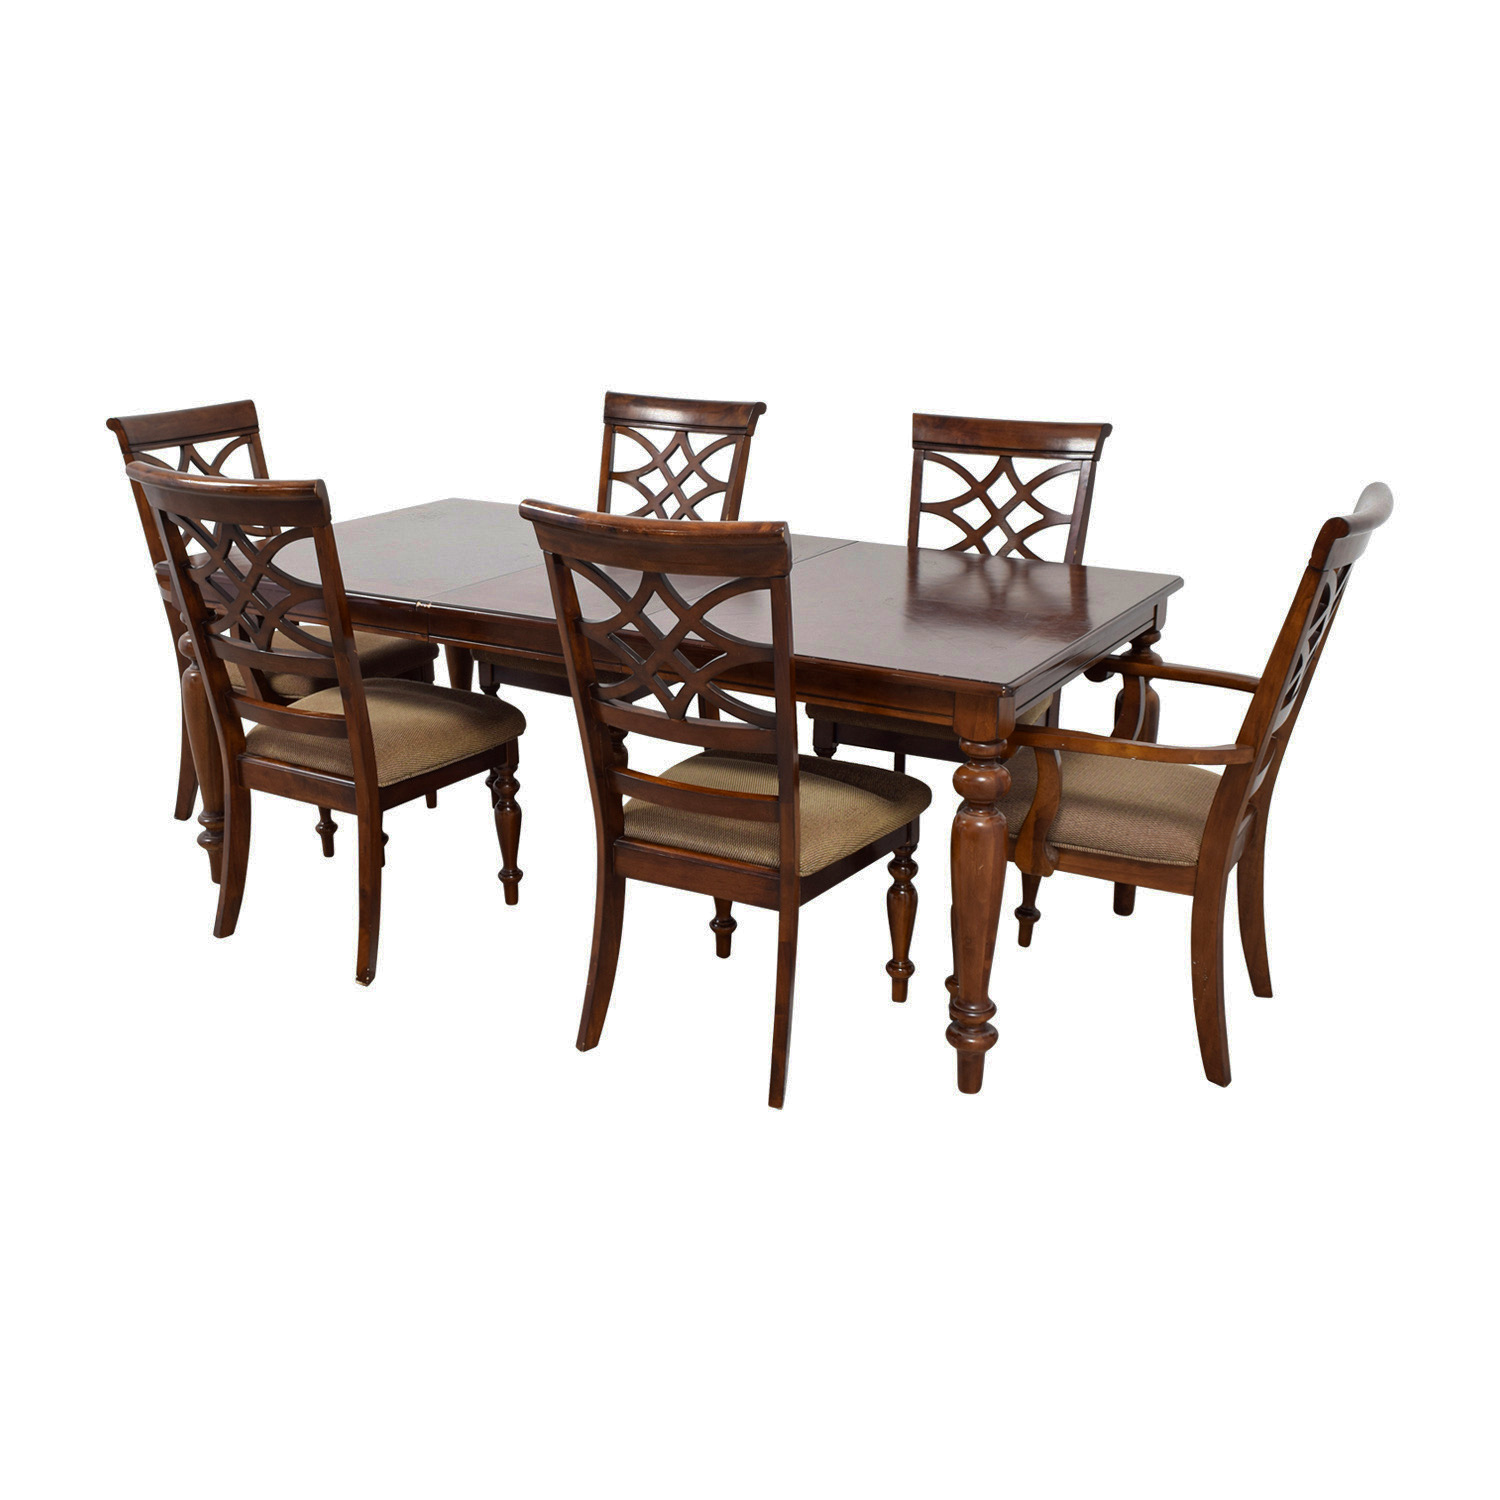 74 Off Bob S Furniture Bob S Furniture Wood Dining Set